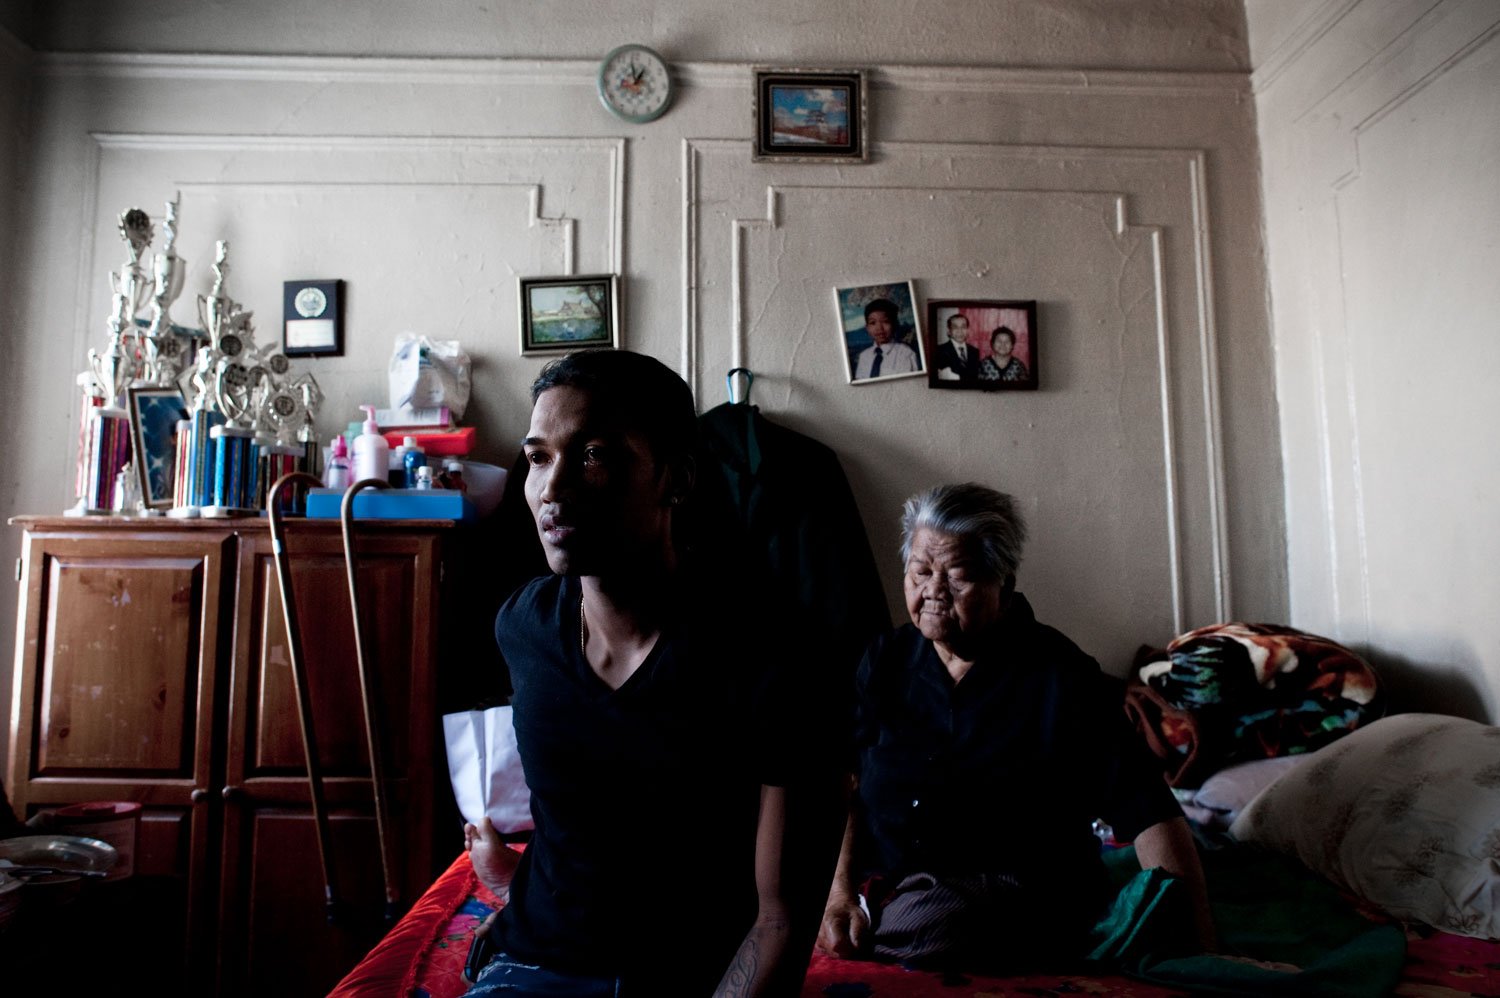 Bronx, New York City, September 2011.Sovann Ith, 23, sits alongside his grandmother, Somaly Ith, 83, in the living room of their Bronx apartment. The complex was once predominantly Cambodian, but is now home to just five families.